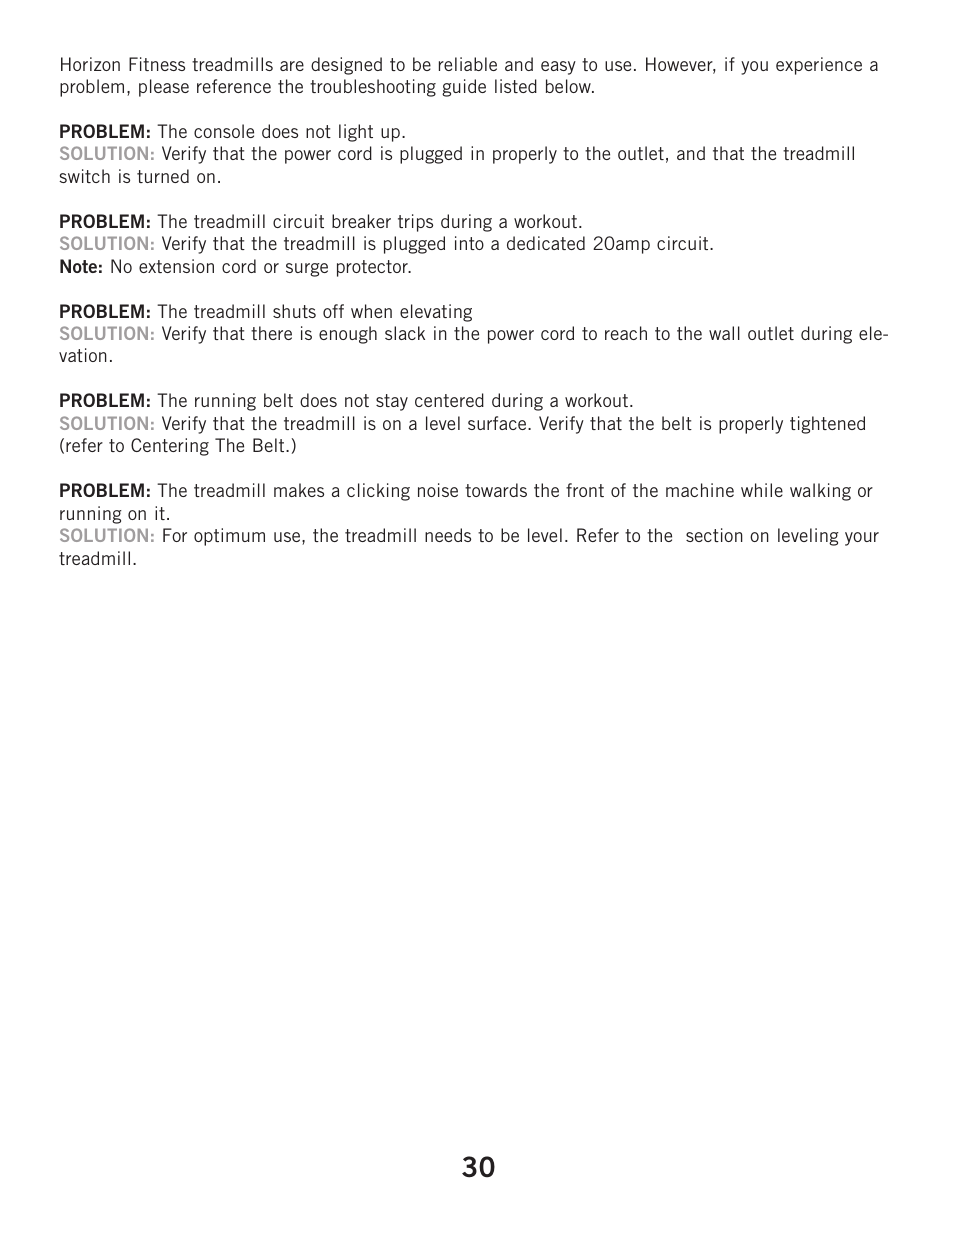 Horizon Fitness ELITE 2 1T User Manual | Page 30 / 40 | Also